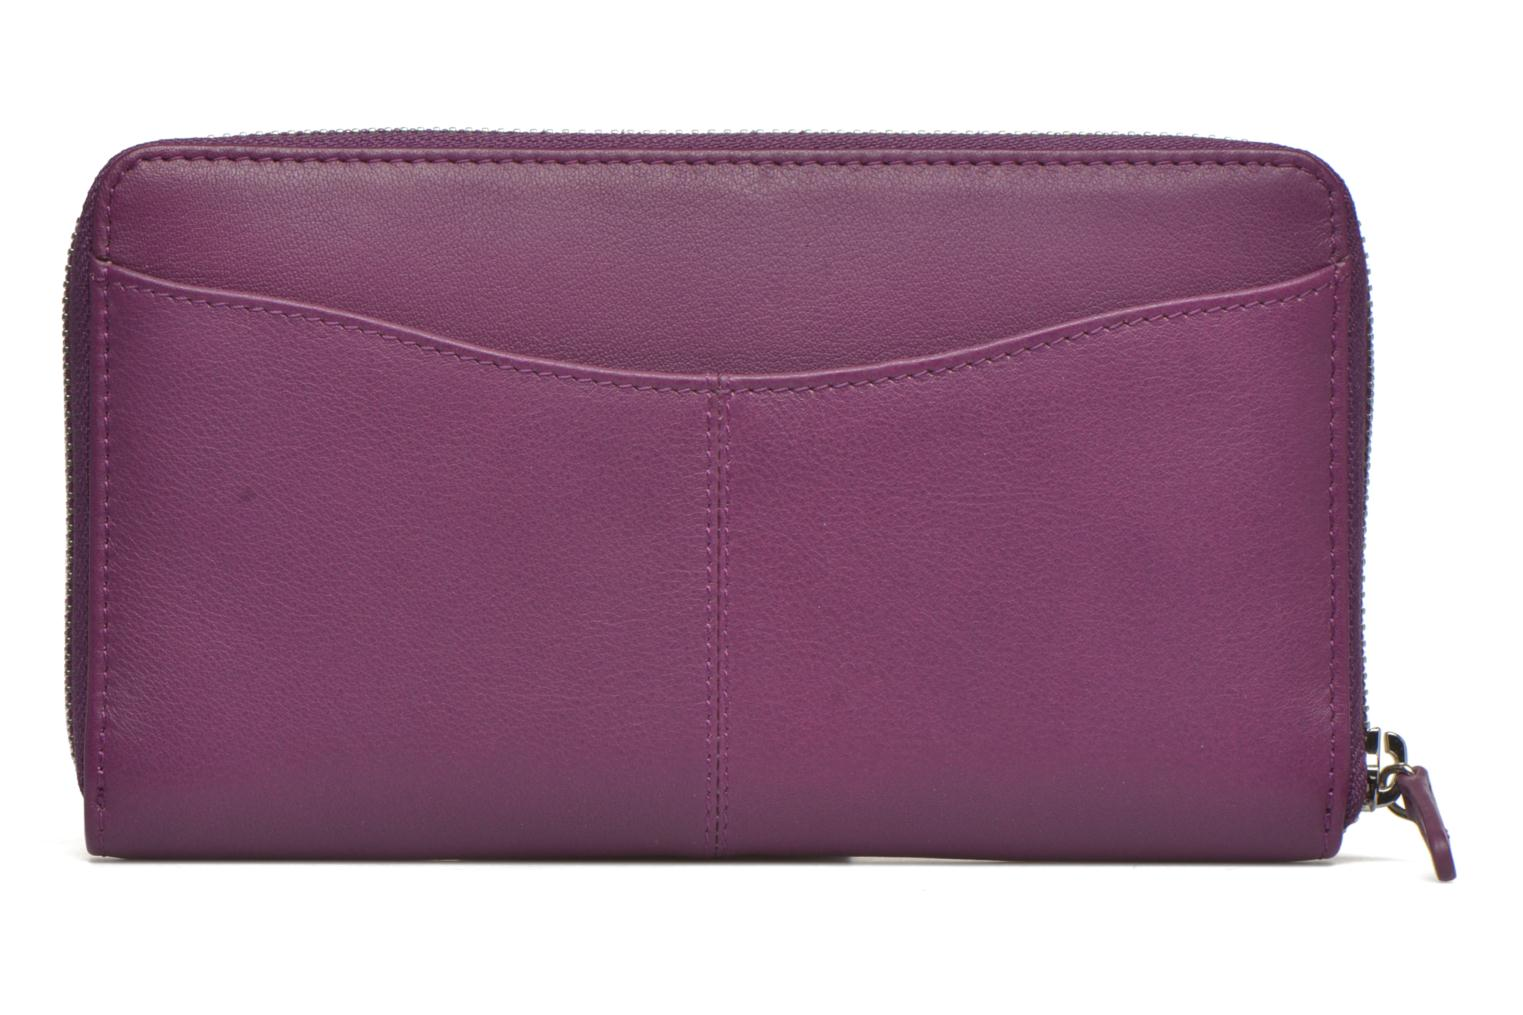 VALENTINE Porte-monnaie long zippé Purple